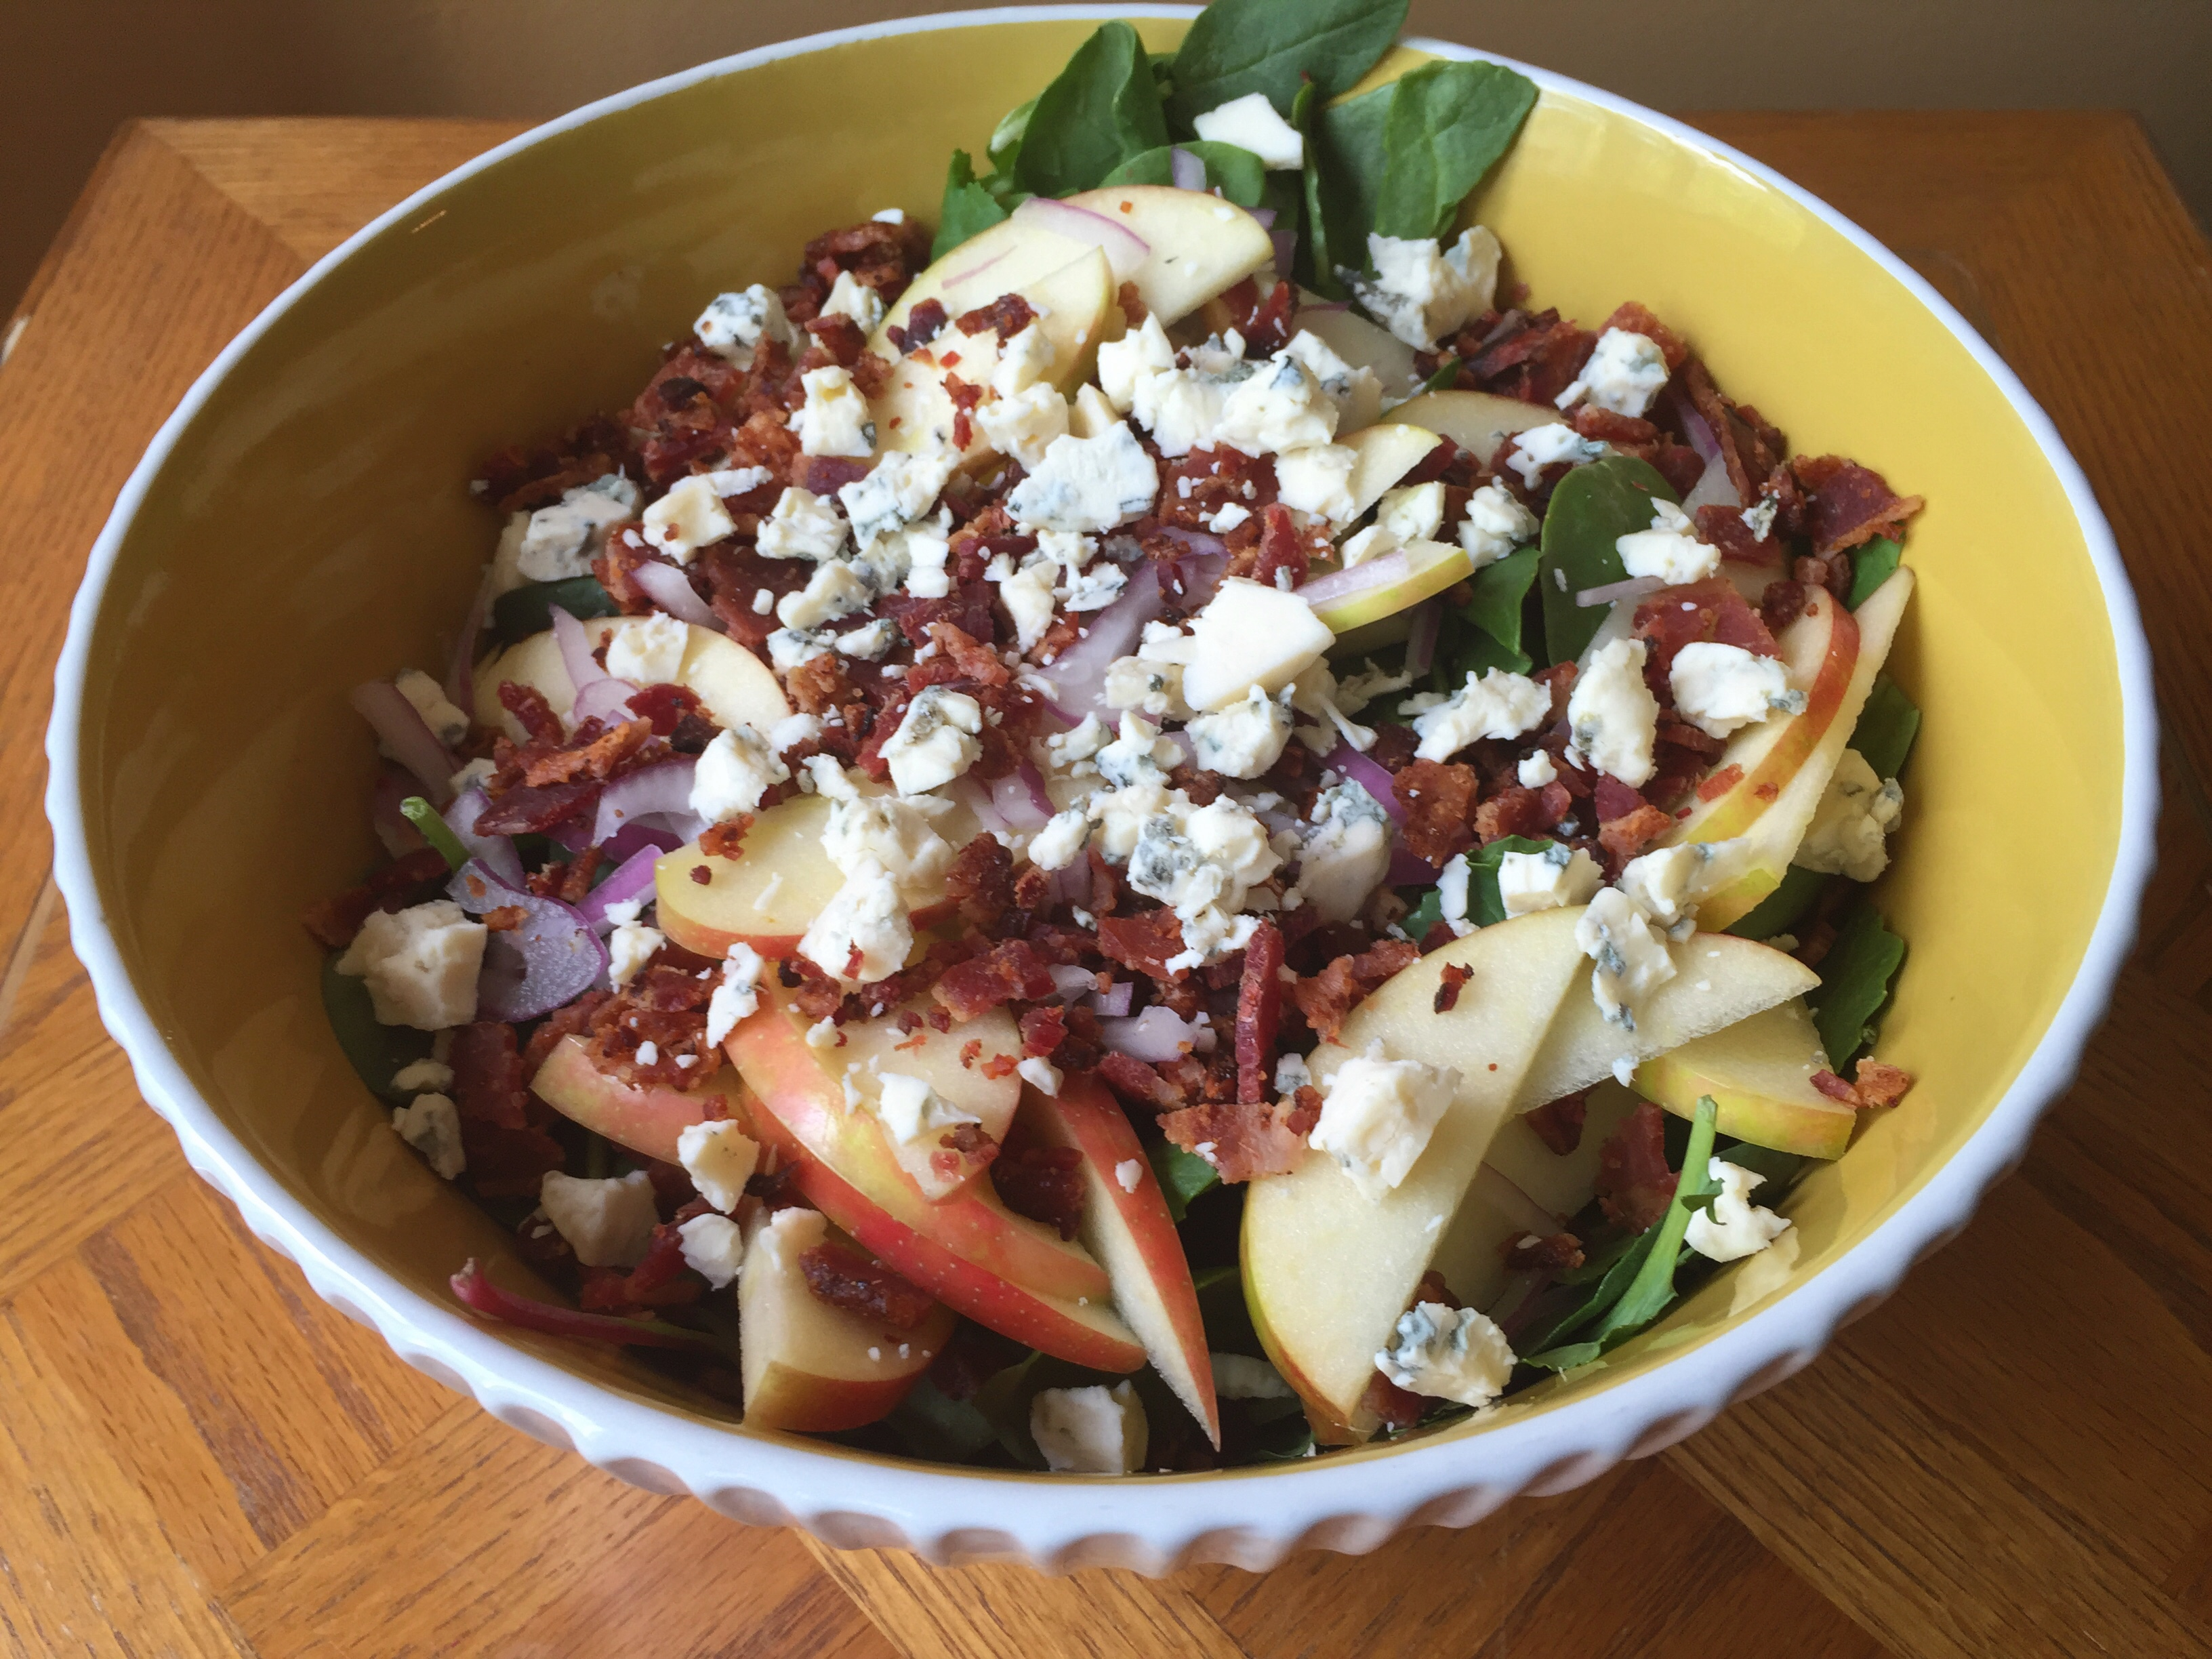 Spinach Apple Salad with Maple Vinaigrette